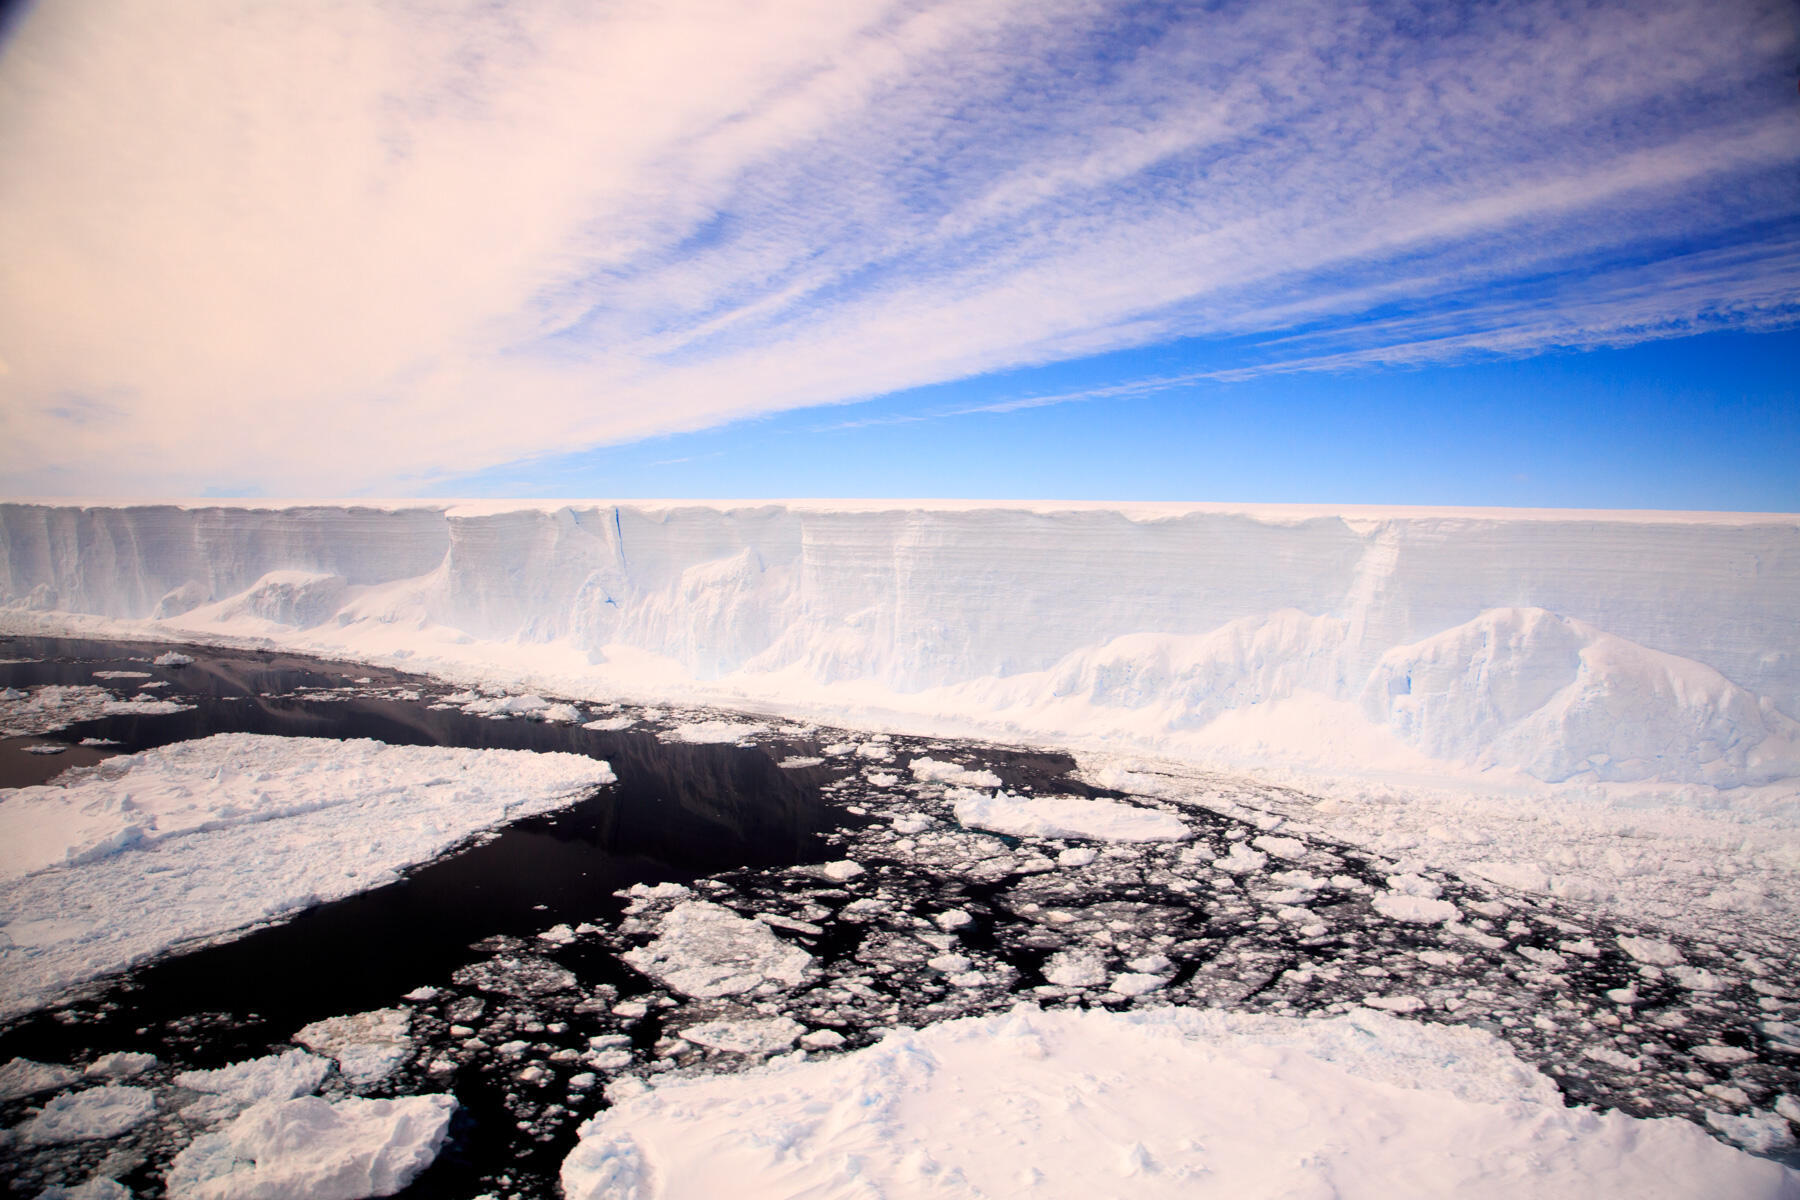 Melt water running into deep fissures caused by warming air is undermining the structural integrity of Antarctica's ice shelves